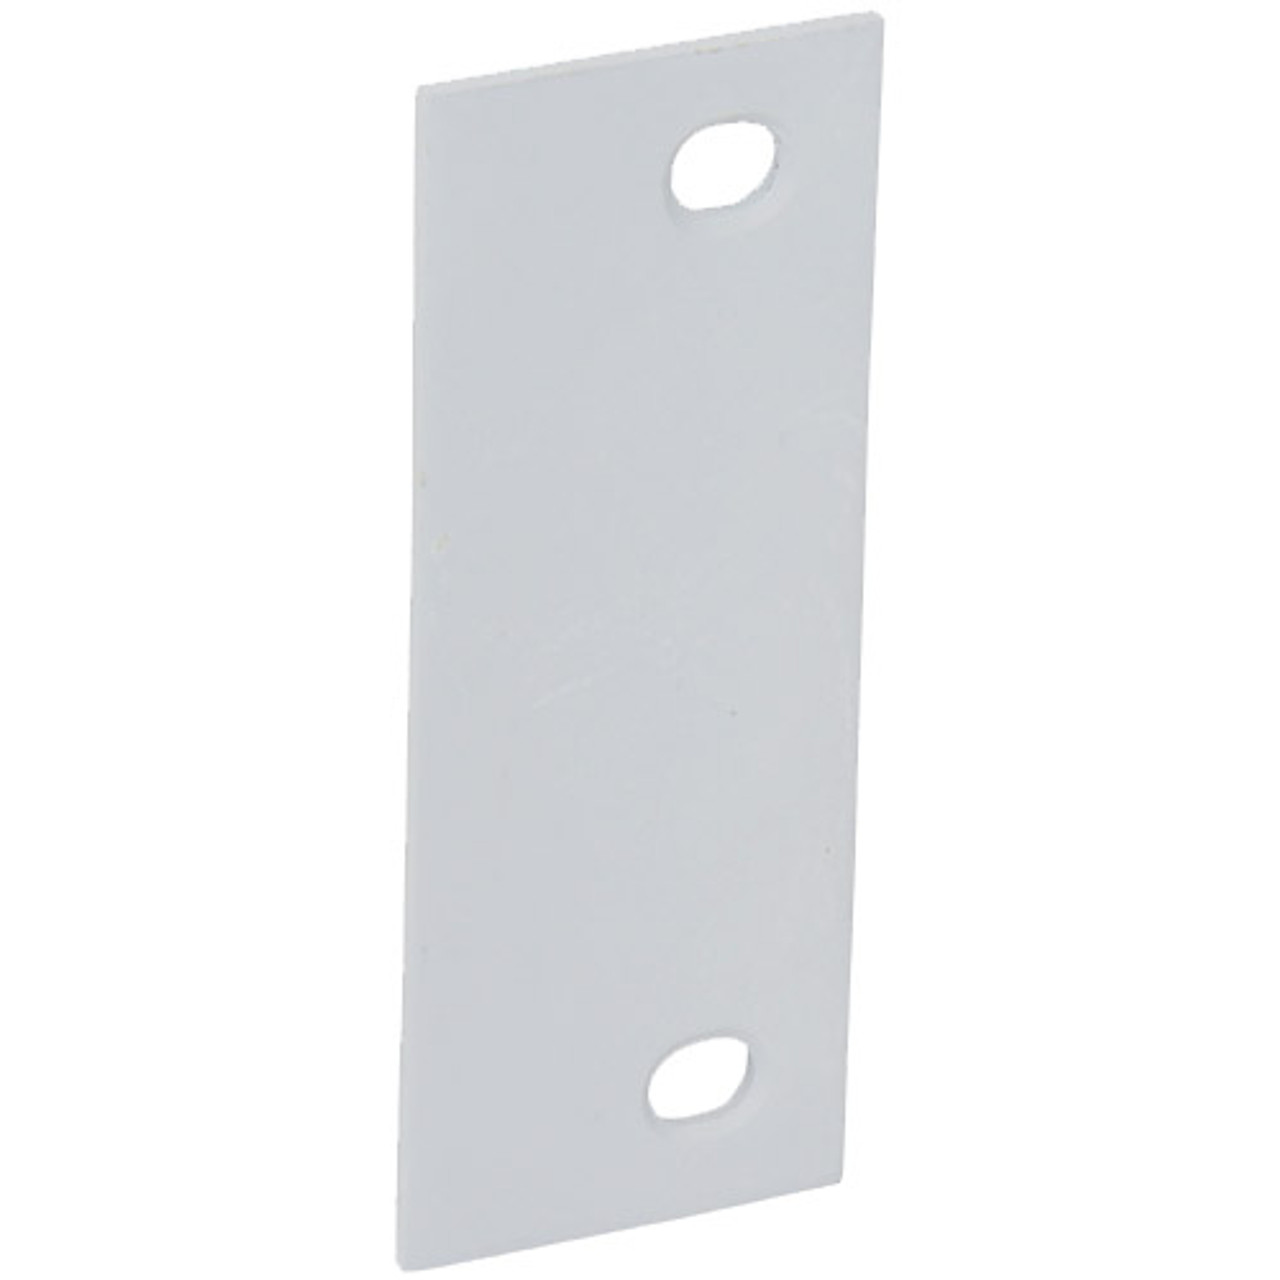 SHF-45-CP Don Jo Hinge Filler Plate in Chrome Plated Finish